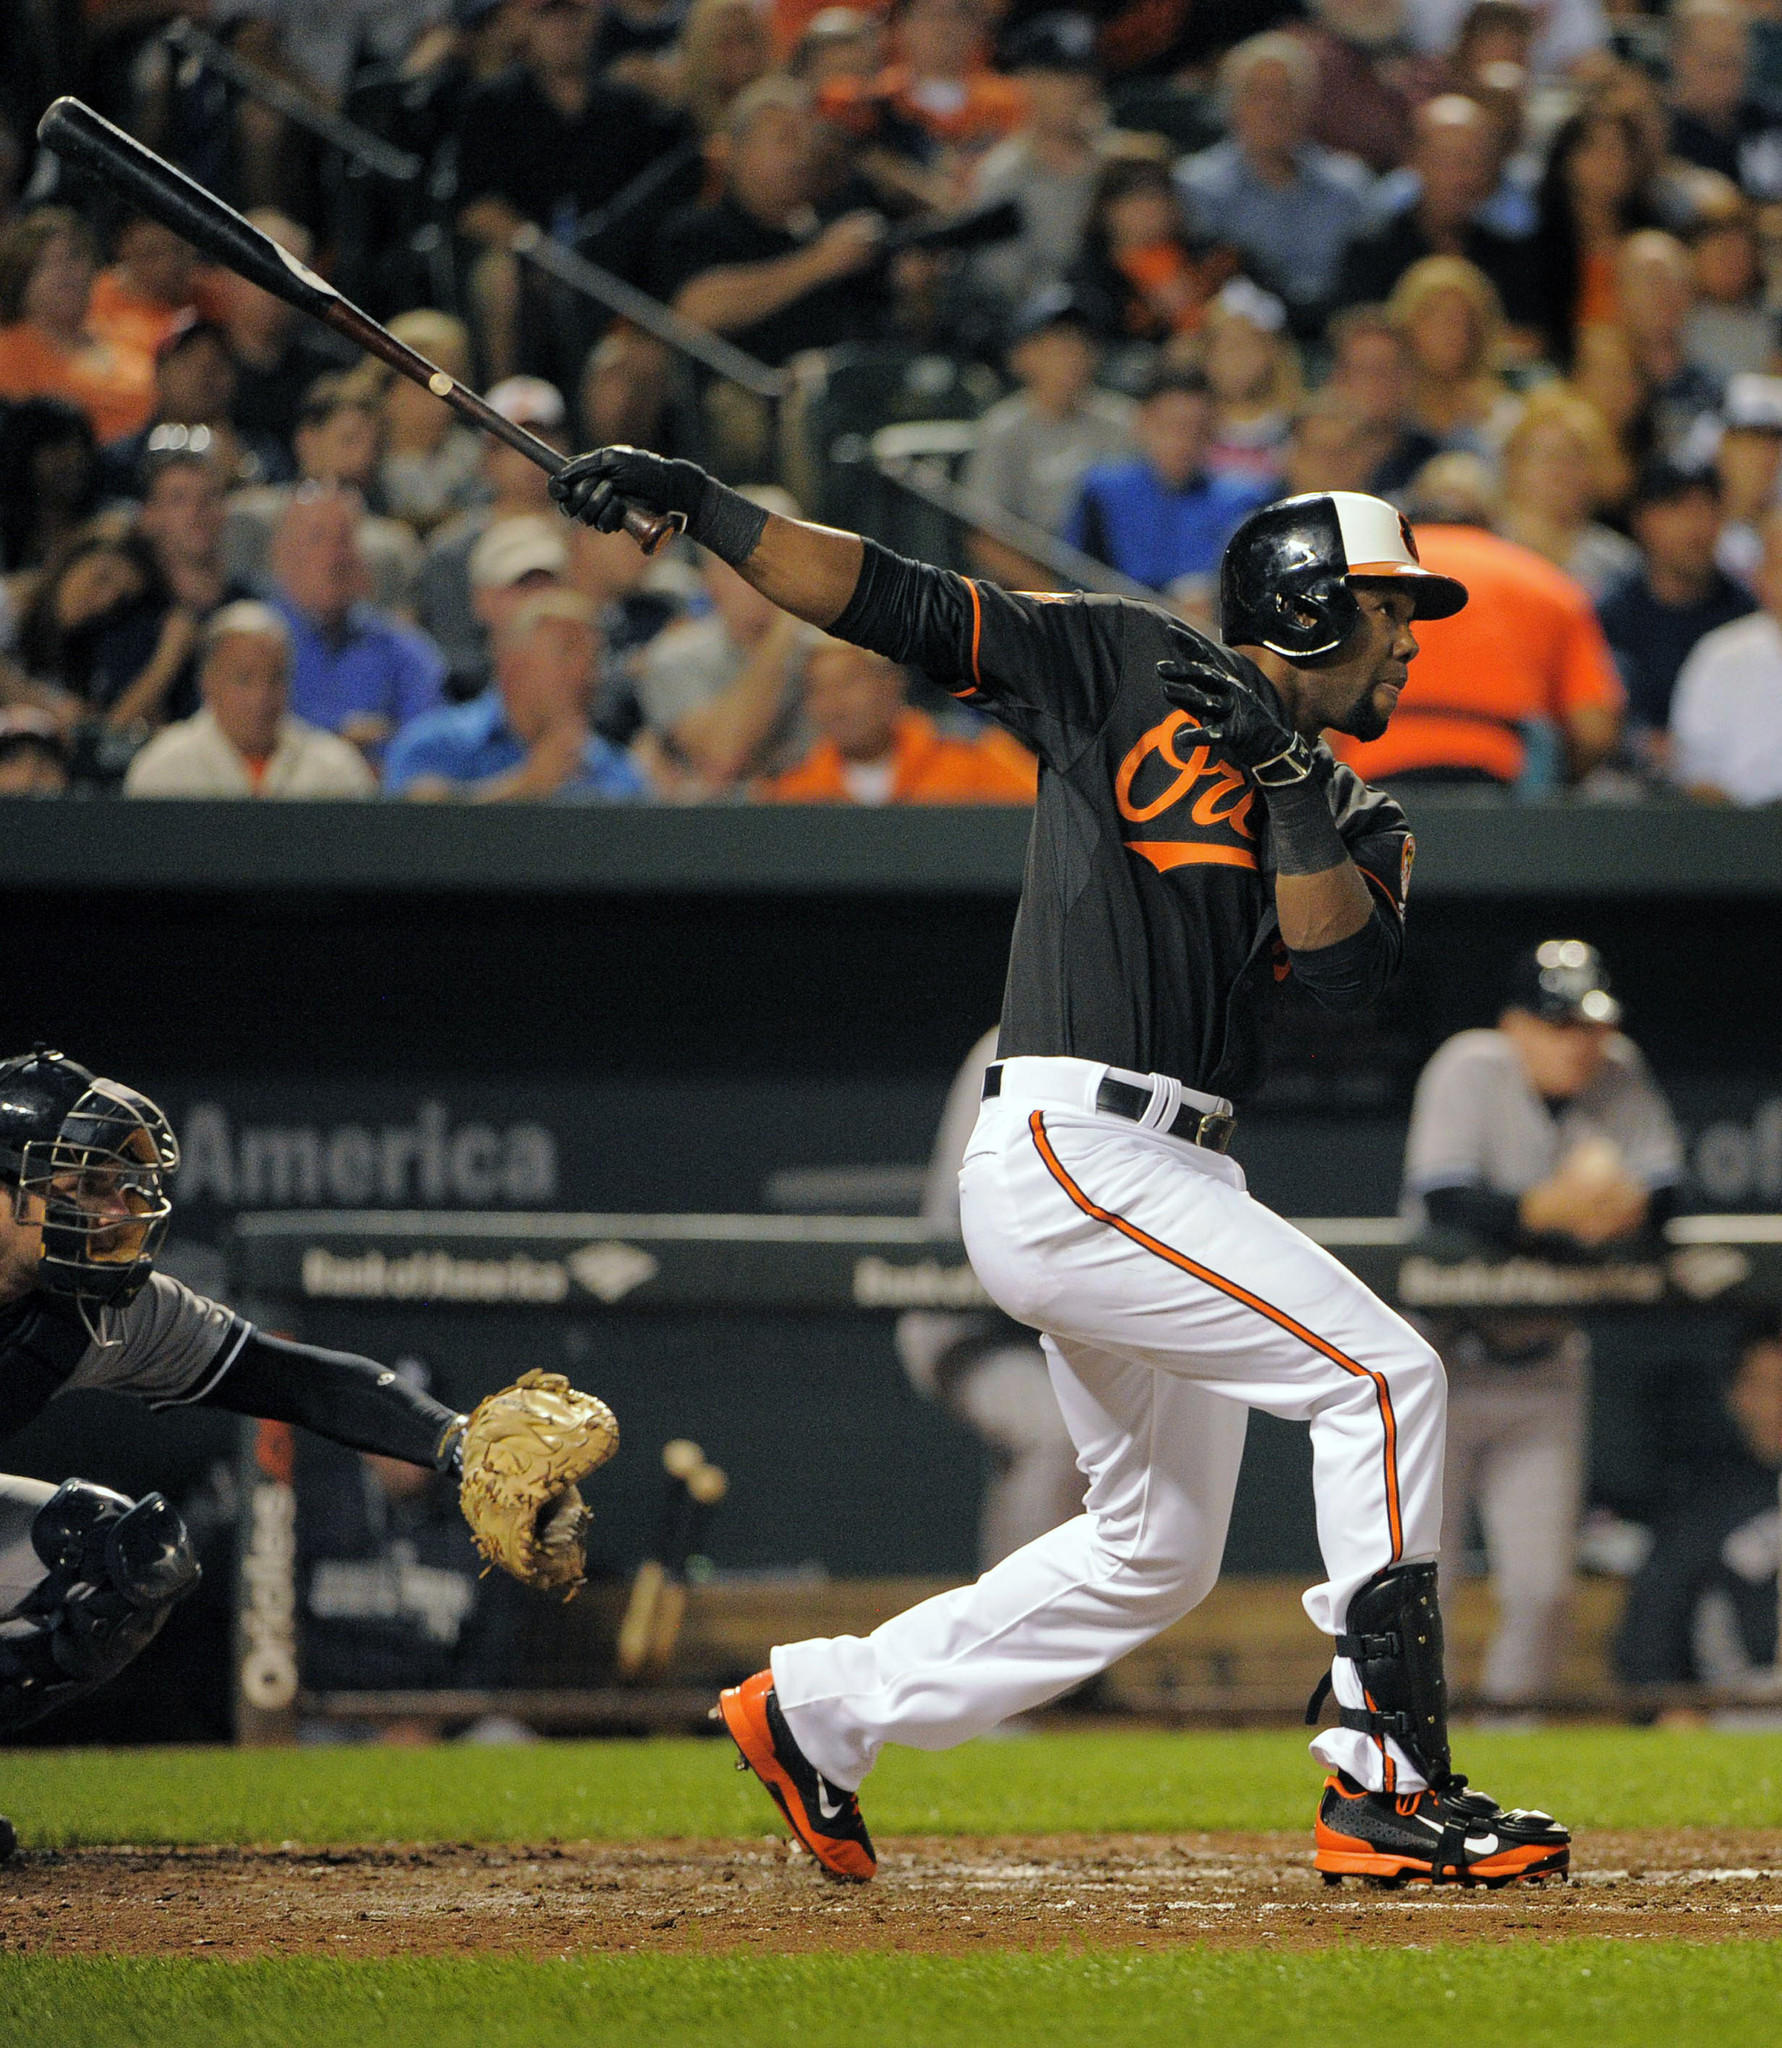 Alejandro De Aza hits a triple to score Ryan Flaherty during the fourth inning against the Yankees on Friday night.